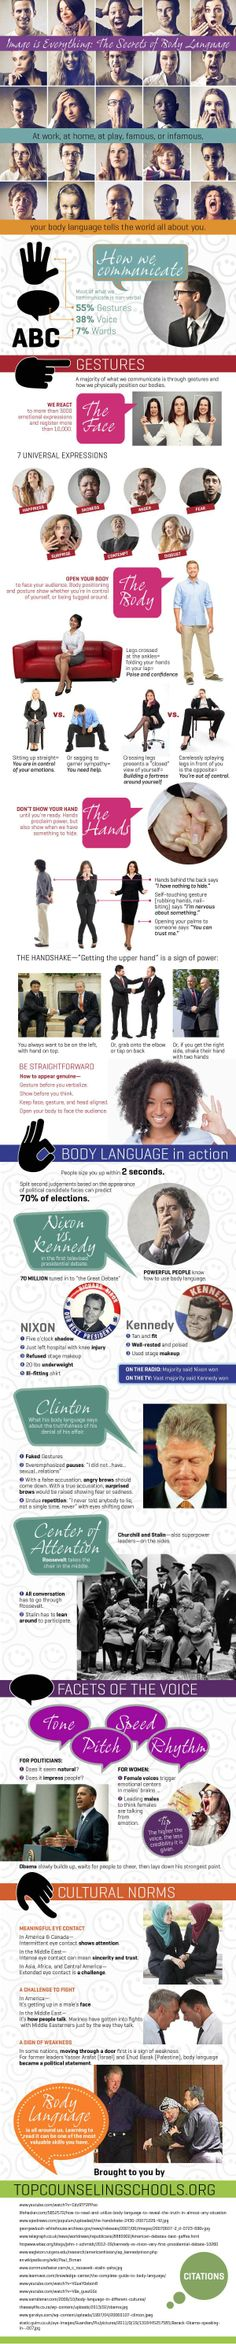 Image is Everything: The Secrets of Body Language